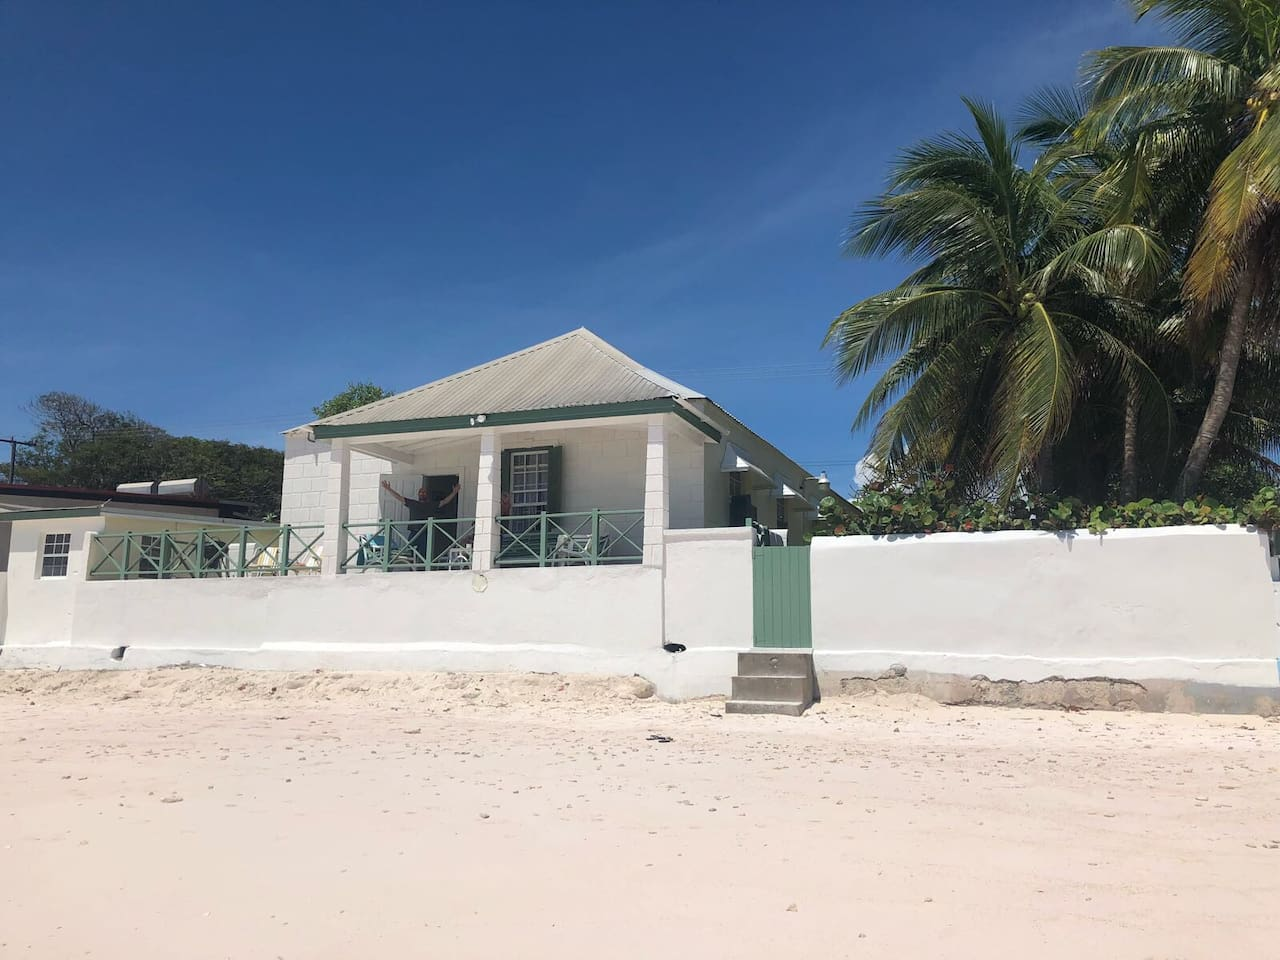 This house really IS on the beach!